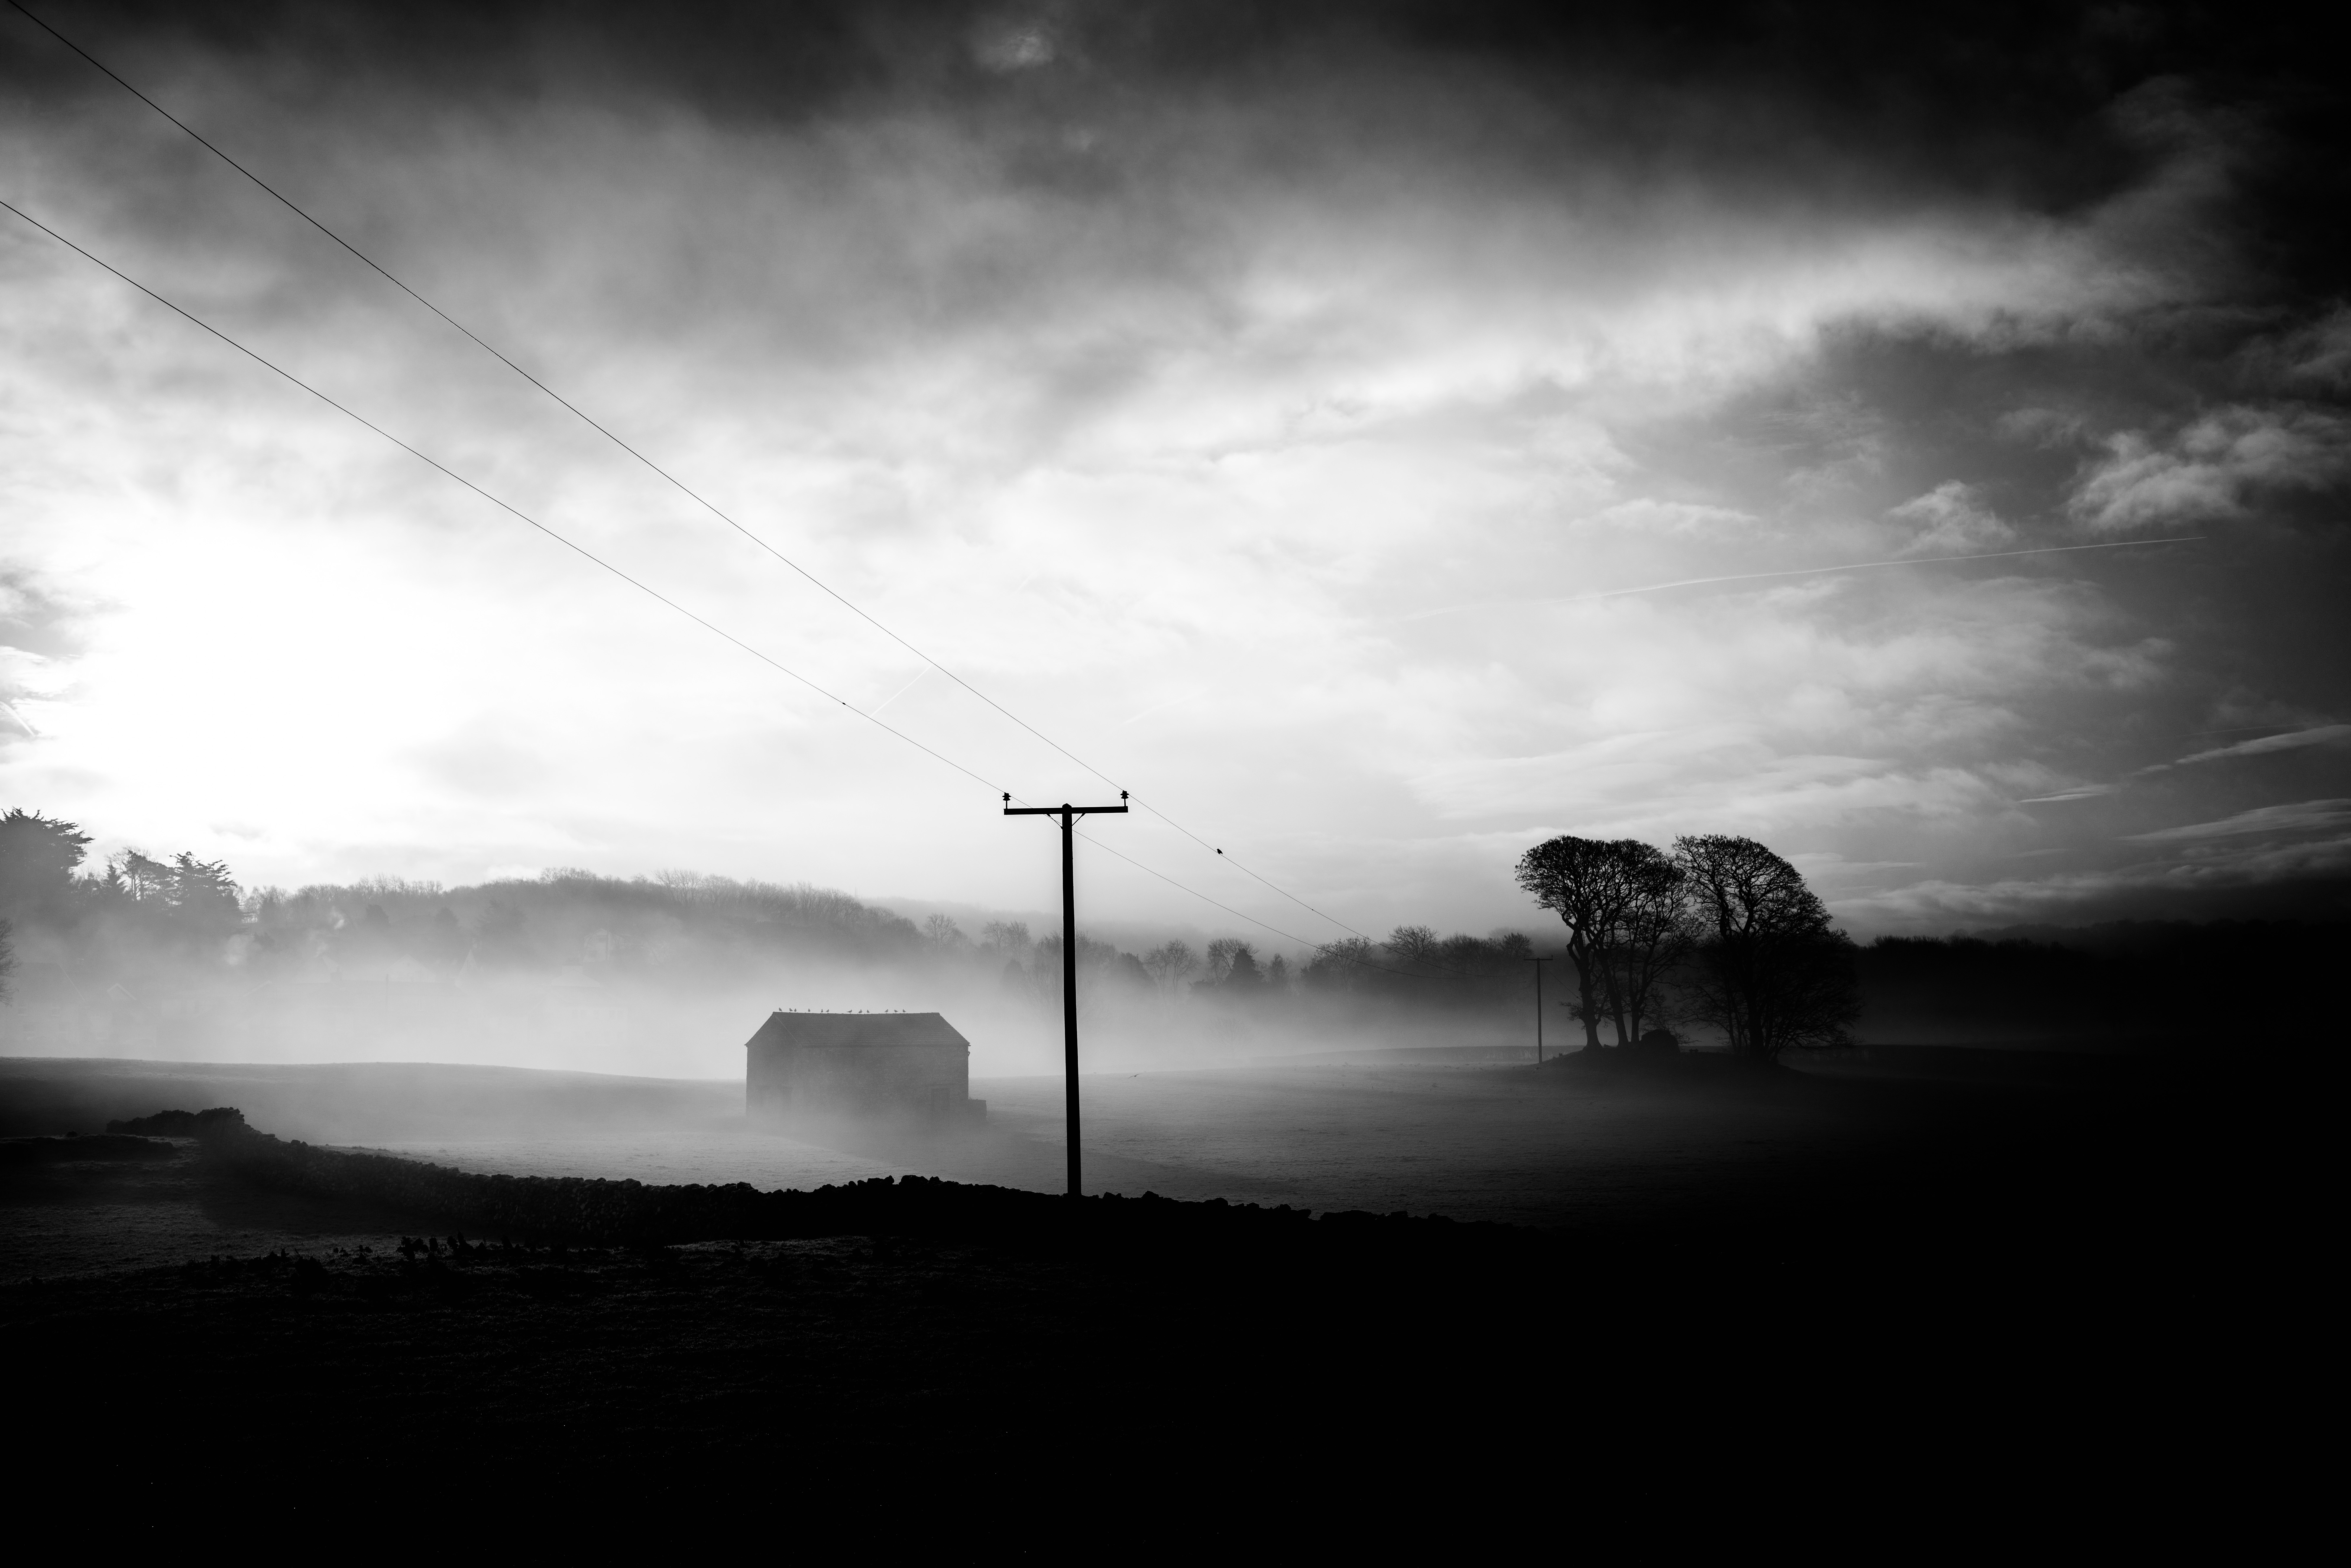 Black and White with Fog landscape image - Free stock